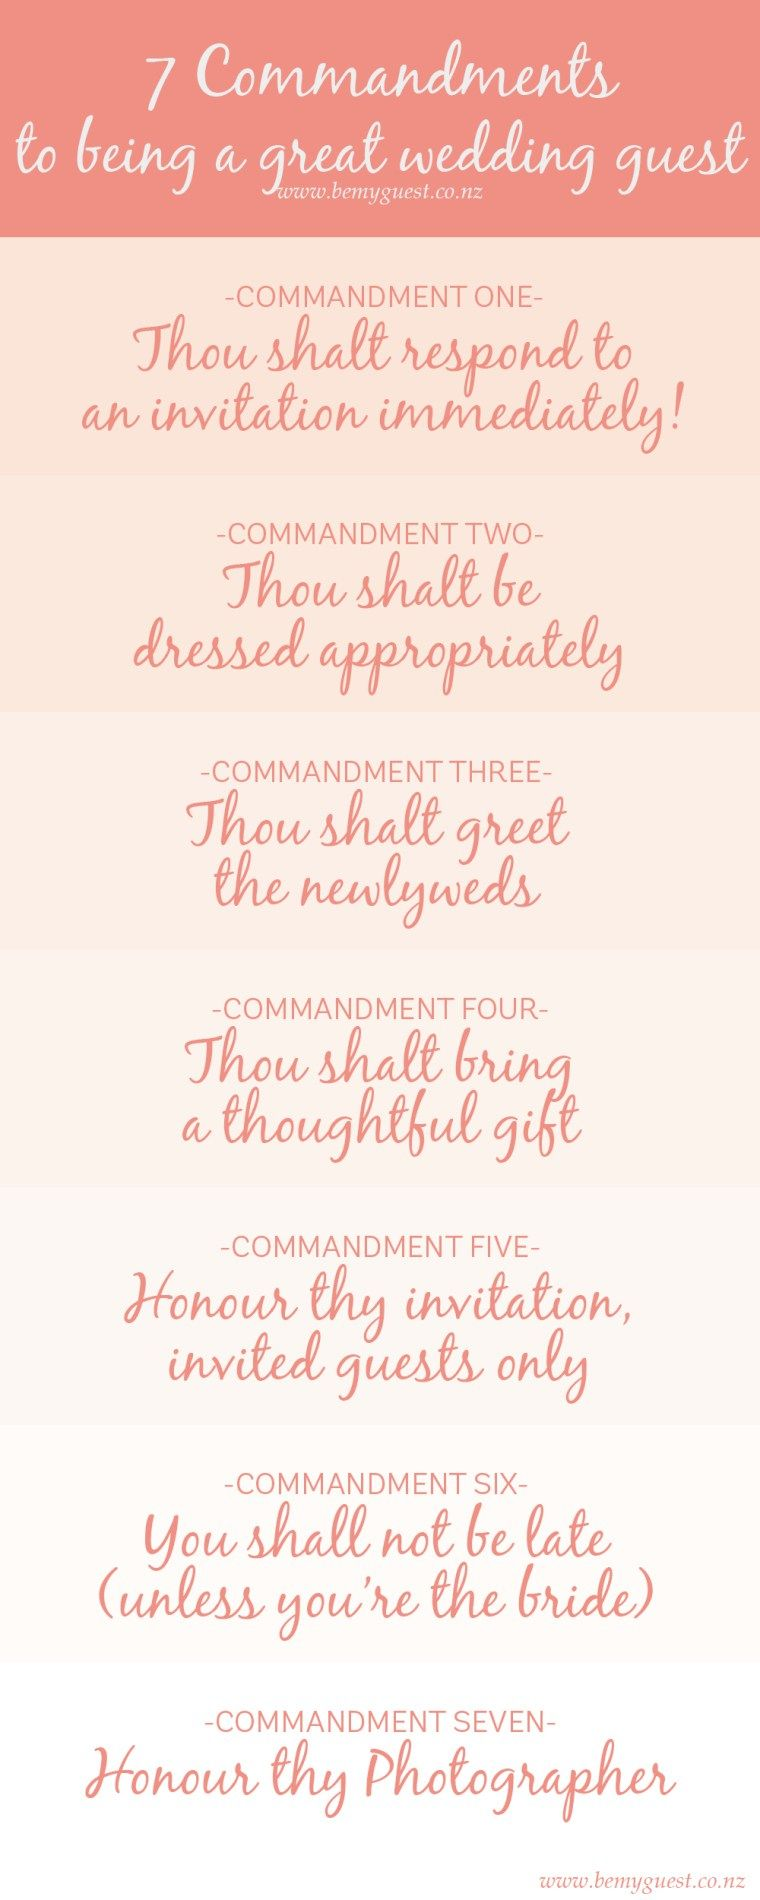 7 Commandments Of Being A Wedding Guest Wedding Etiquette Rules For Guests Southern Bride Wedding Etiquette Wedding Planning Advice Southern Bride